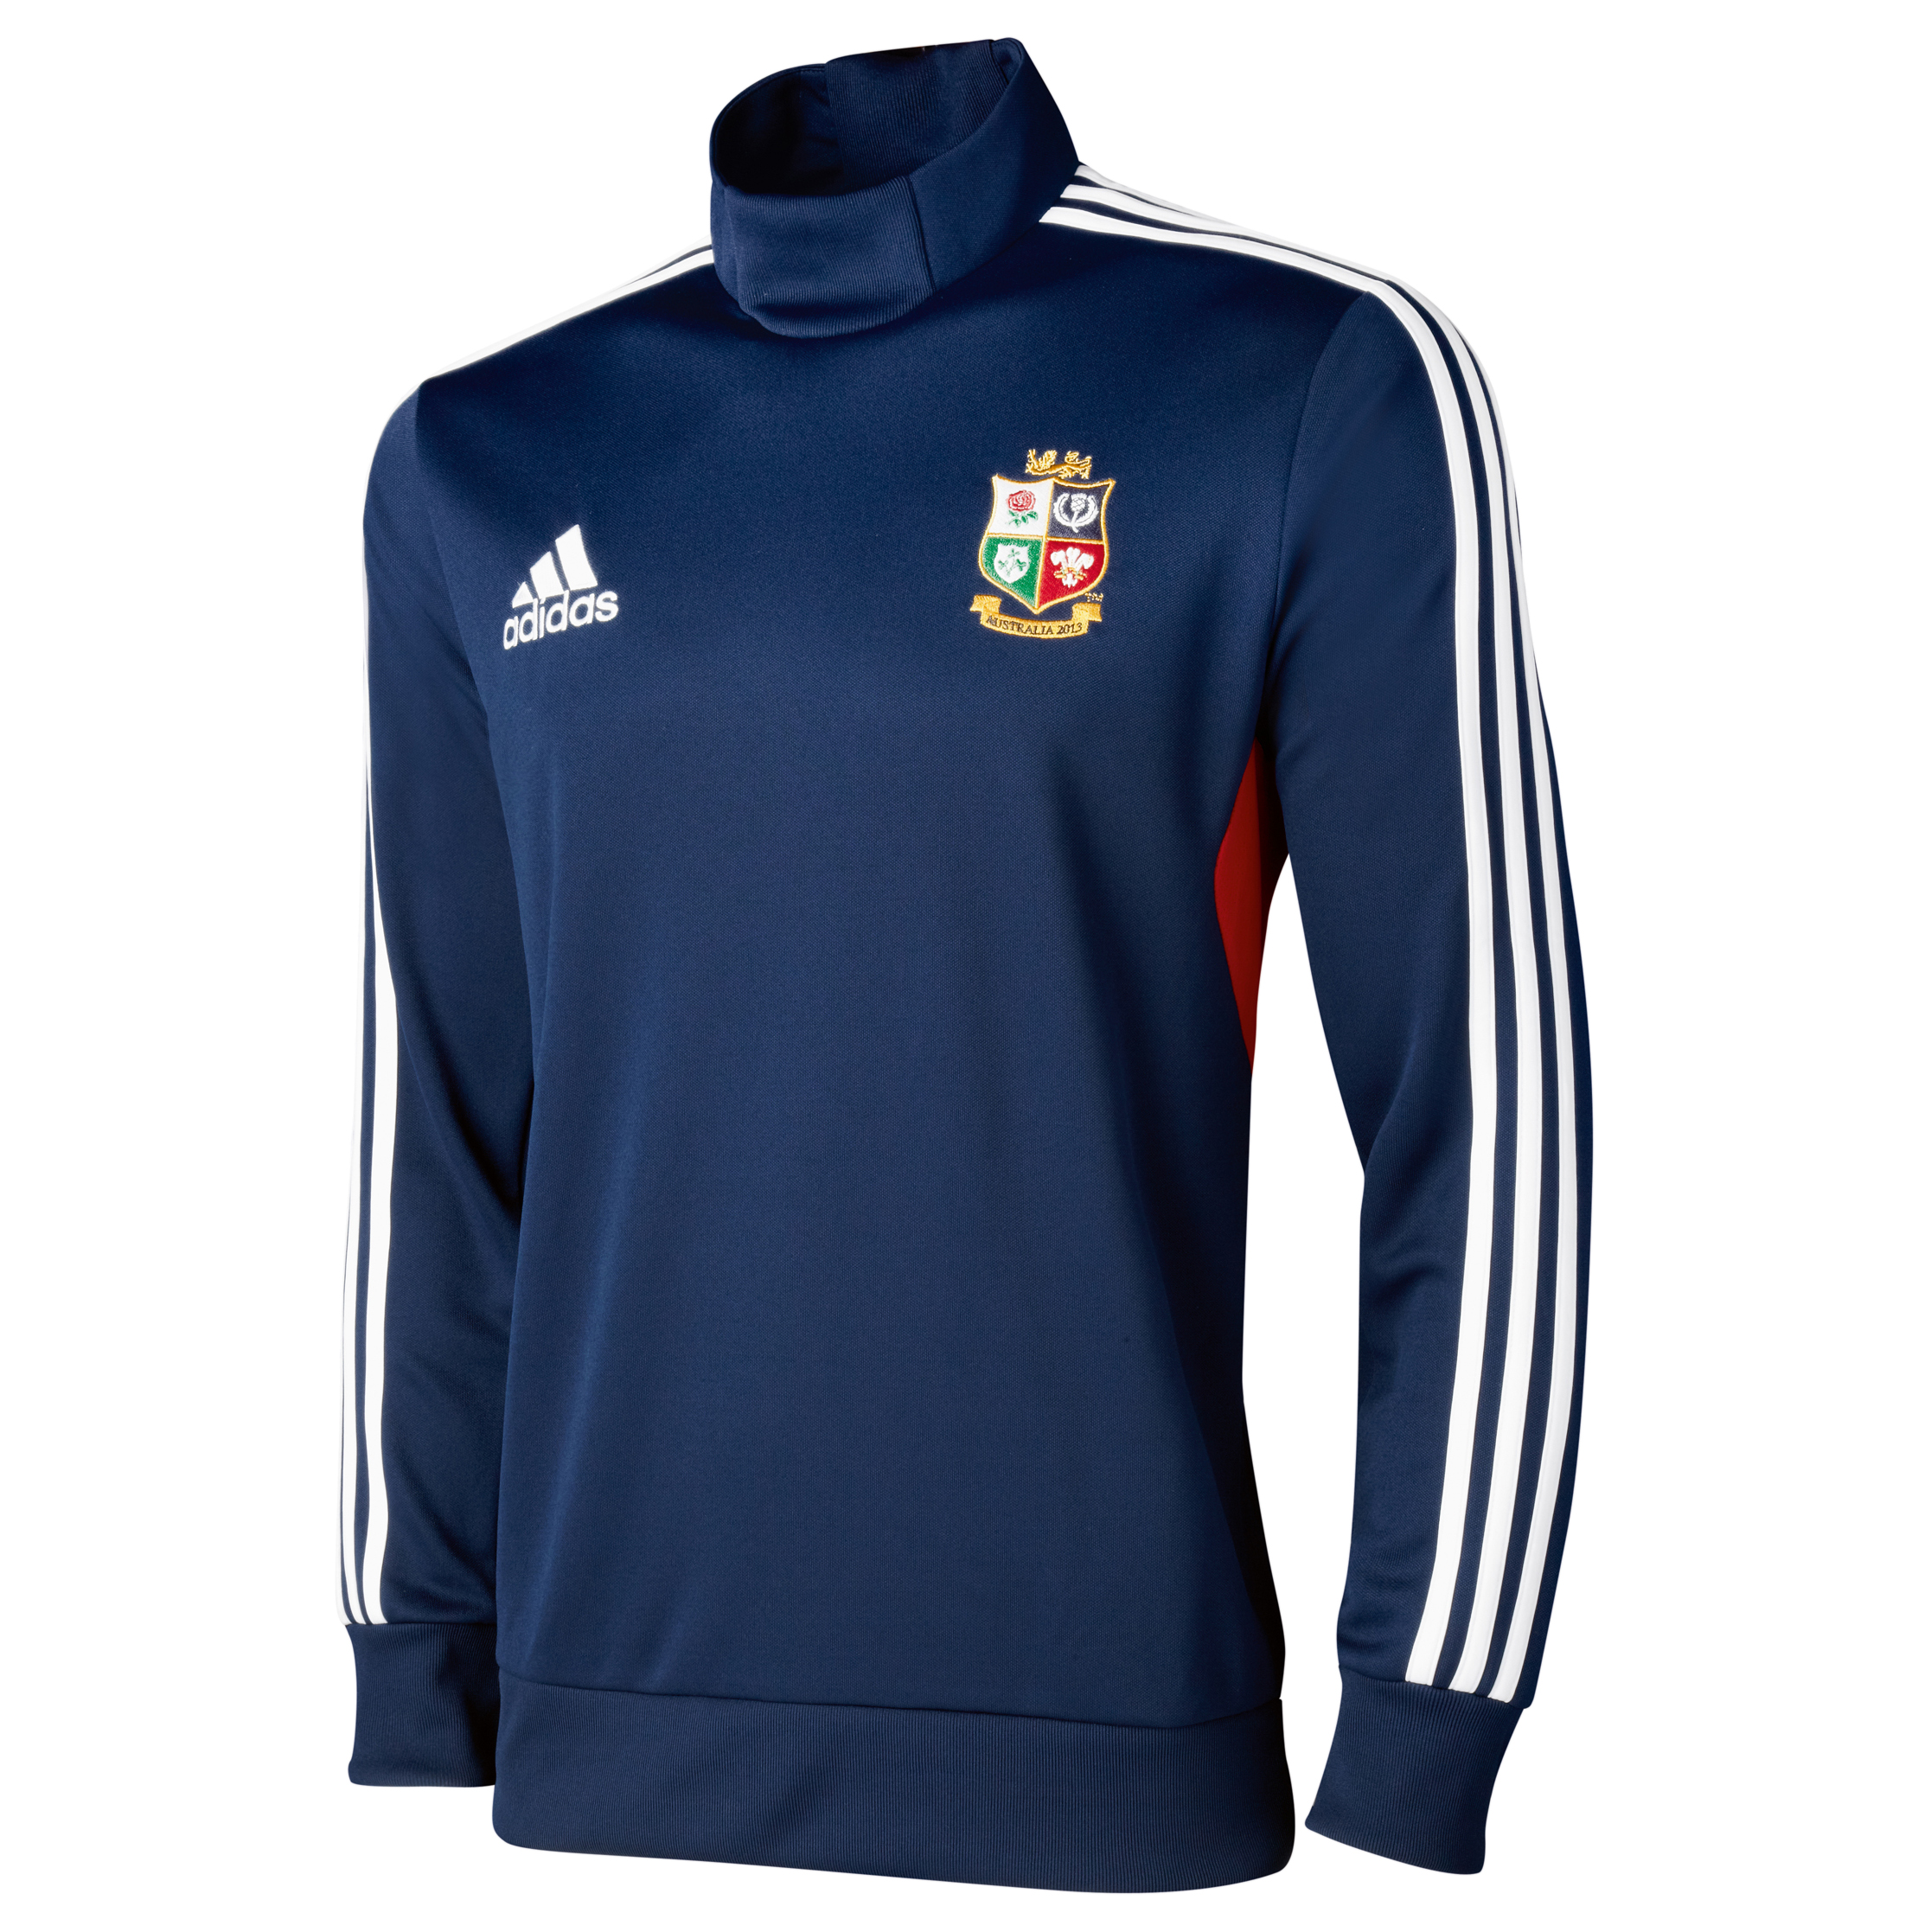 adidas British and Irish Lions Drill Top - Collegiate Navy/White